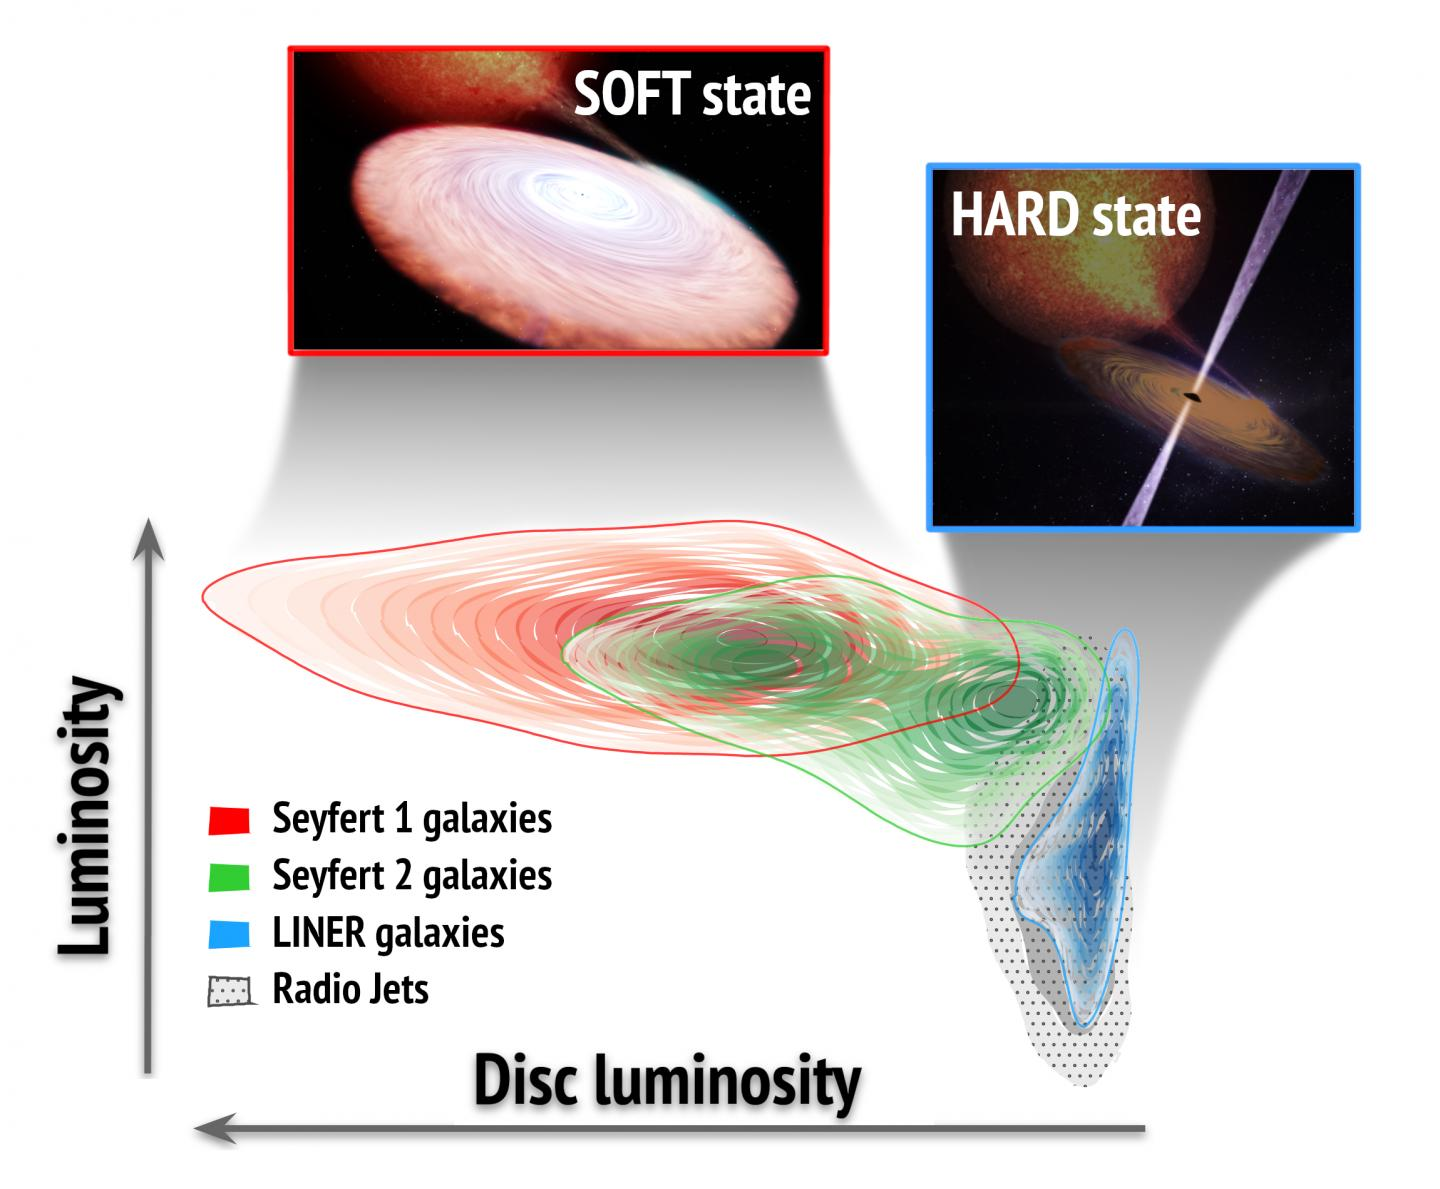 Supermassive black holes in active galaxies show accretion states similar to those seen in stellar-mass black holes in our galaxy